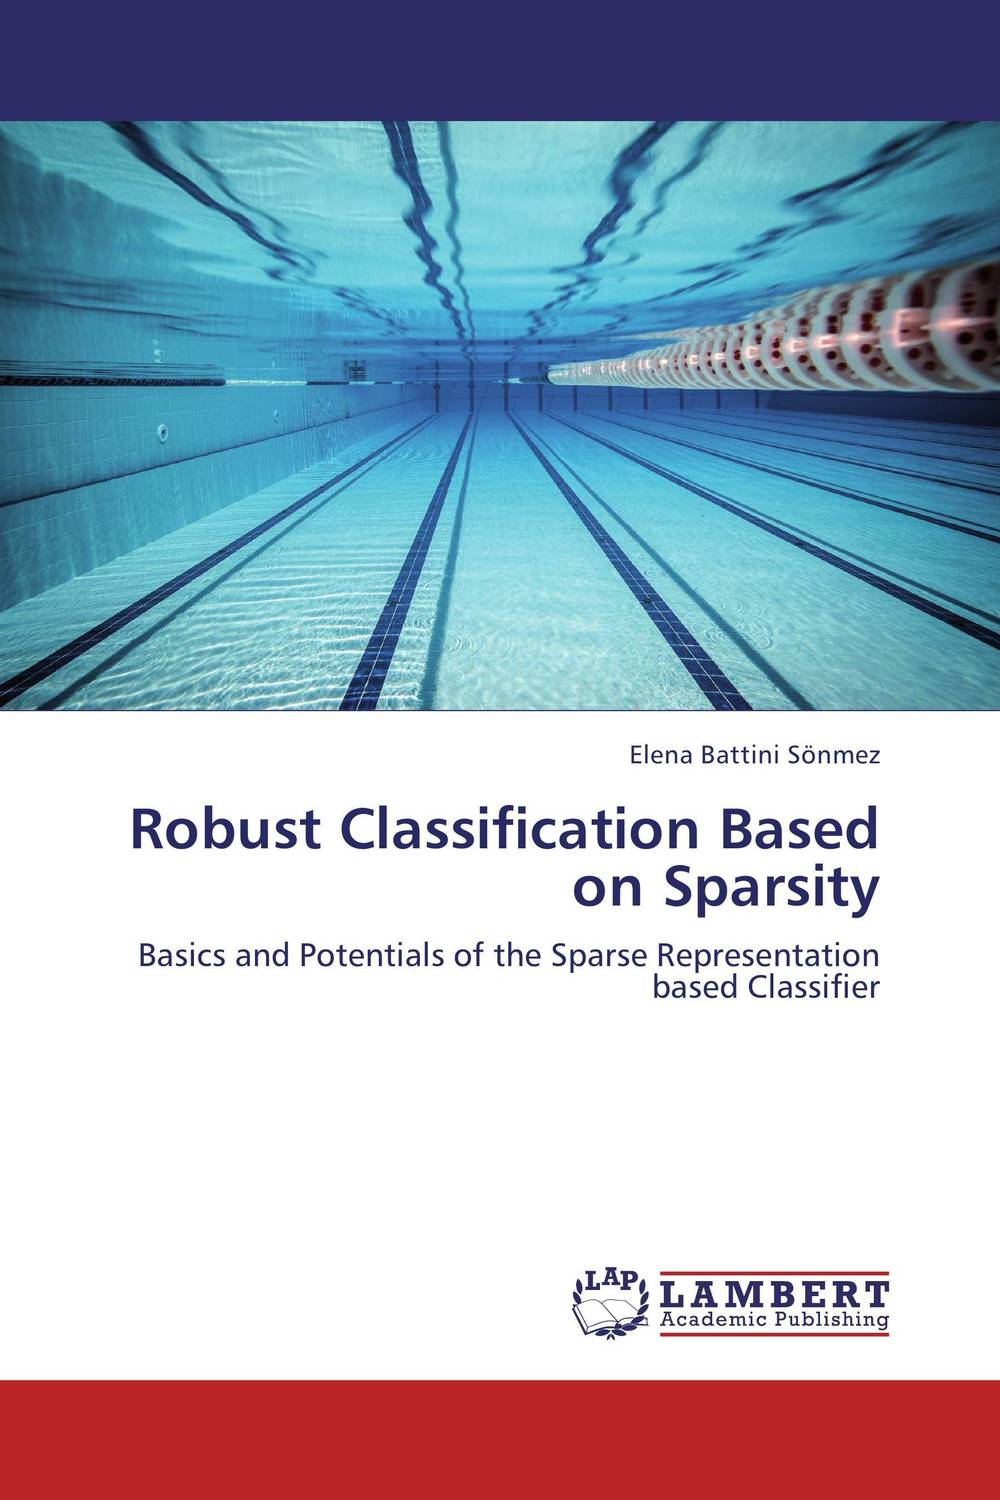 Robust Classification Based on Sparsity rakesh kumar khandal and sapana kaushik coal tar pitch with reduced pahs and thermosets based on it